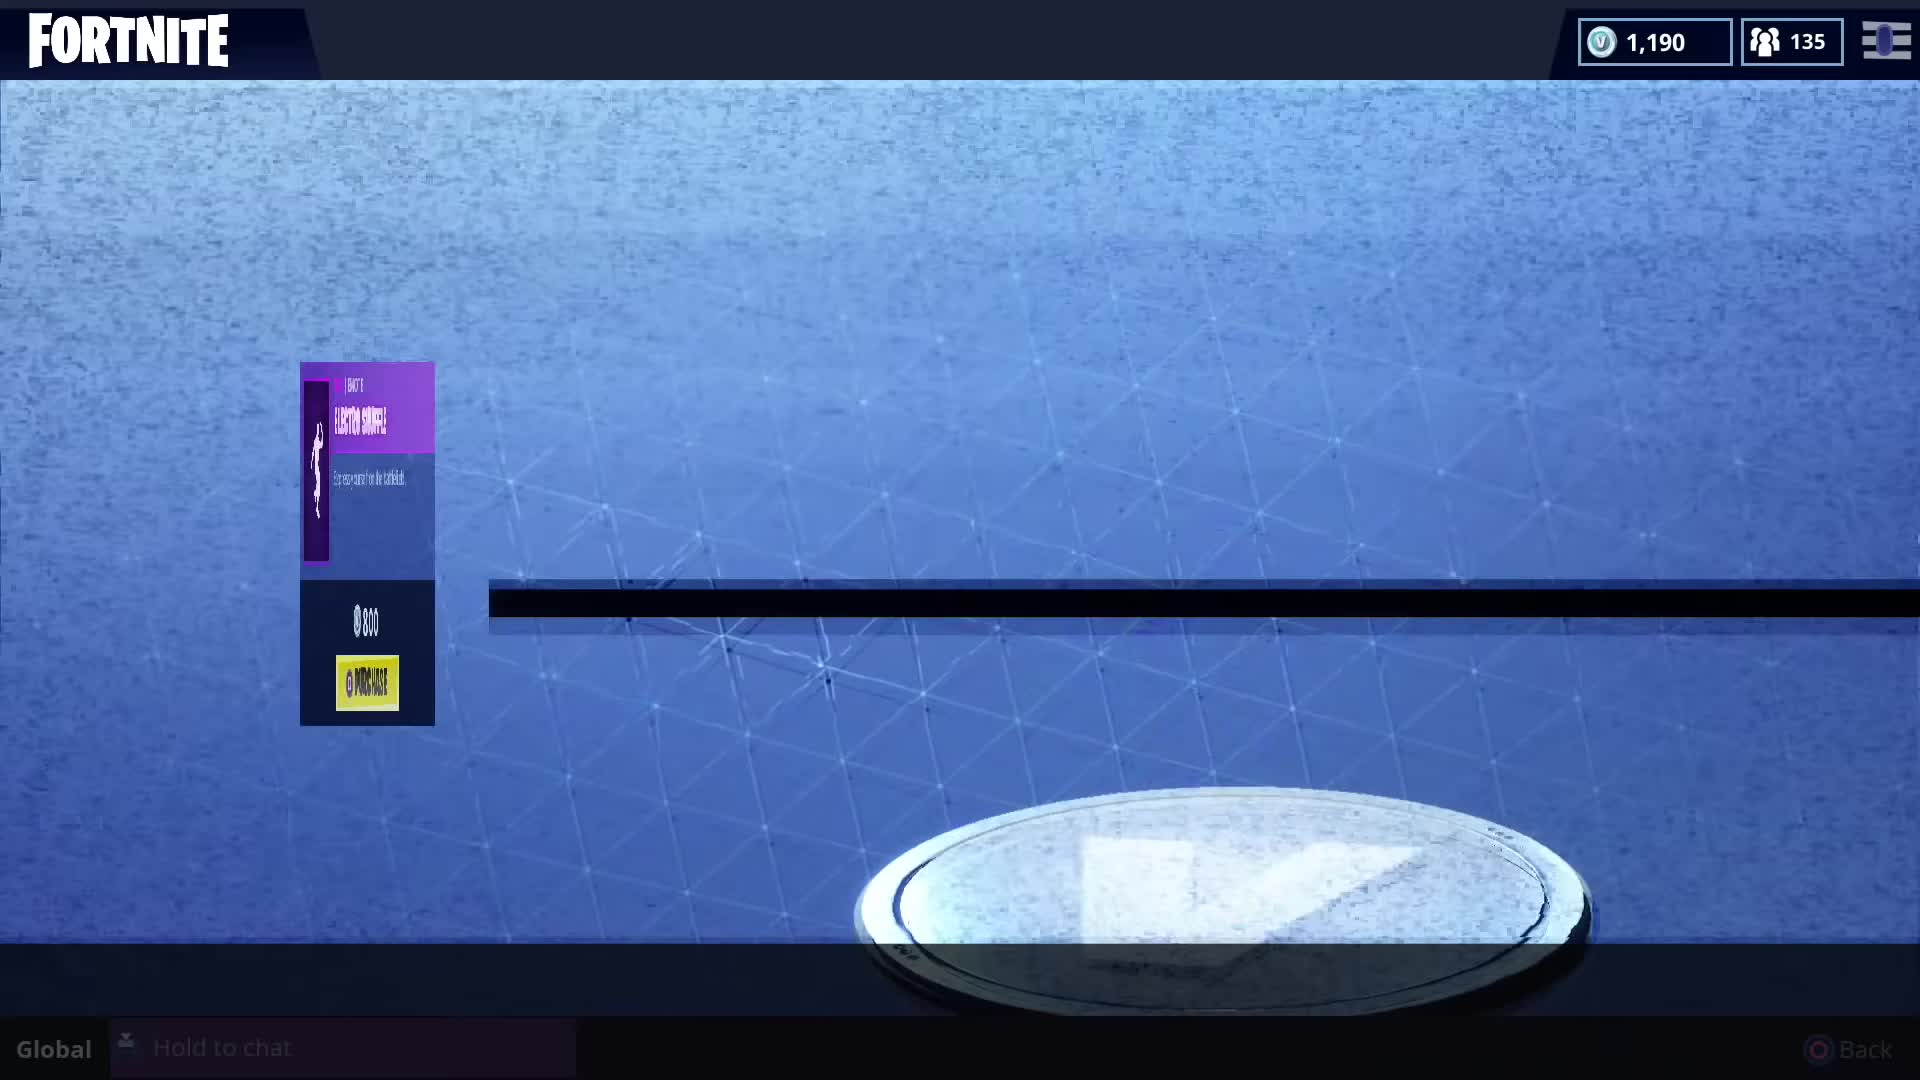 Fortnite Dance Emotes Gifs Search Search Share On Homdor